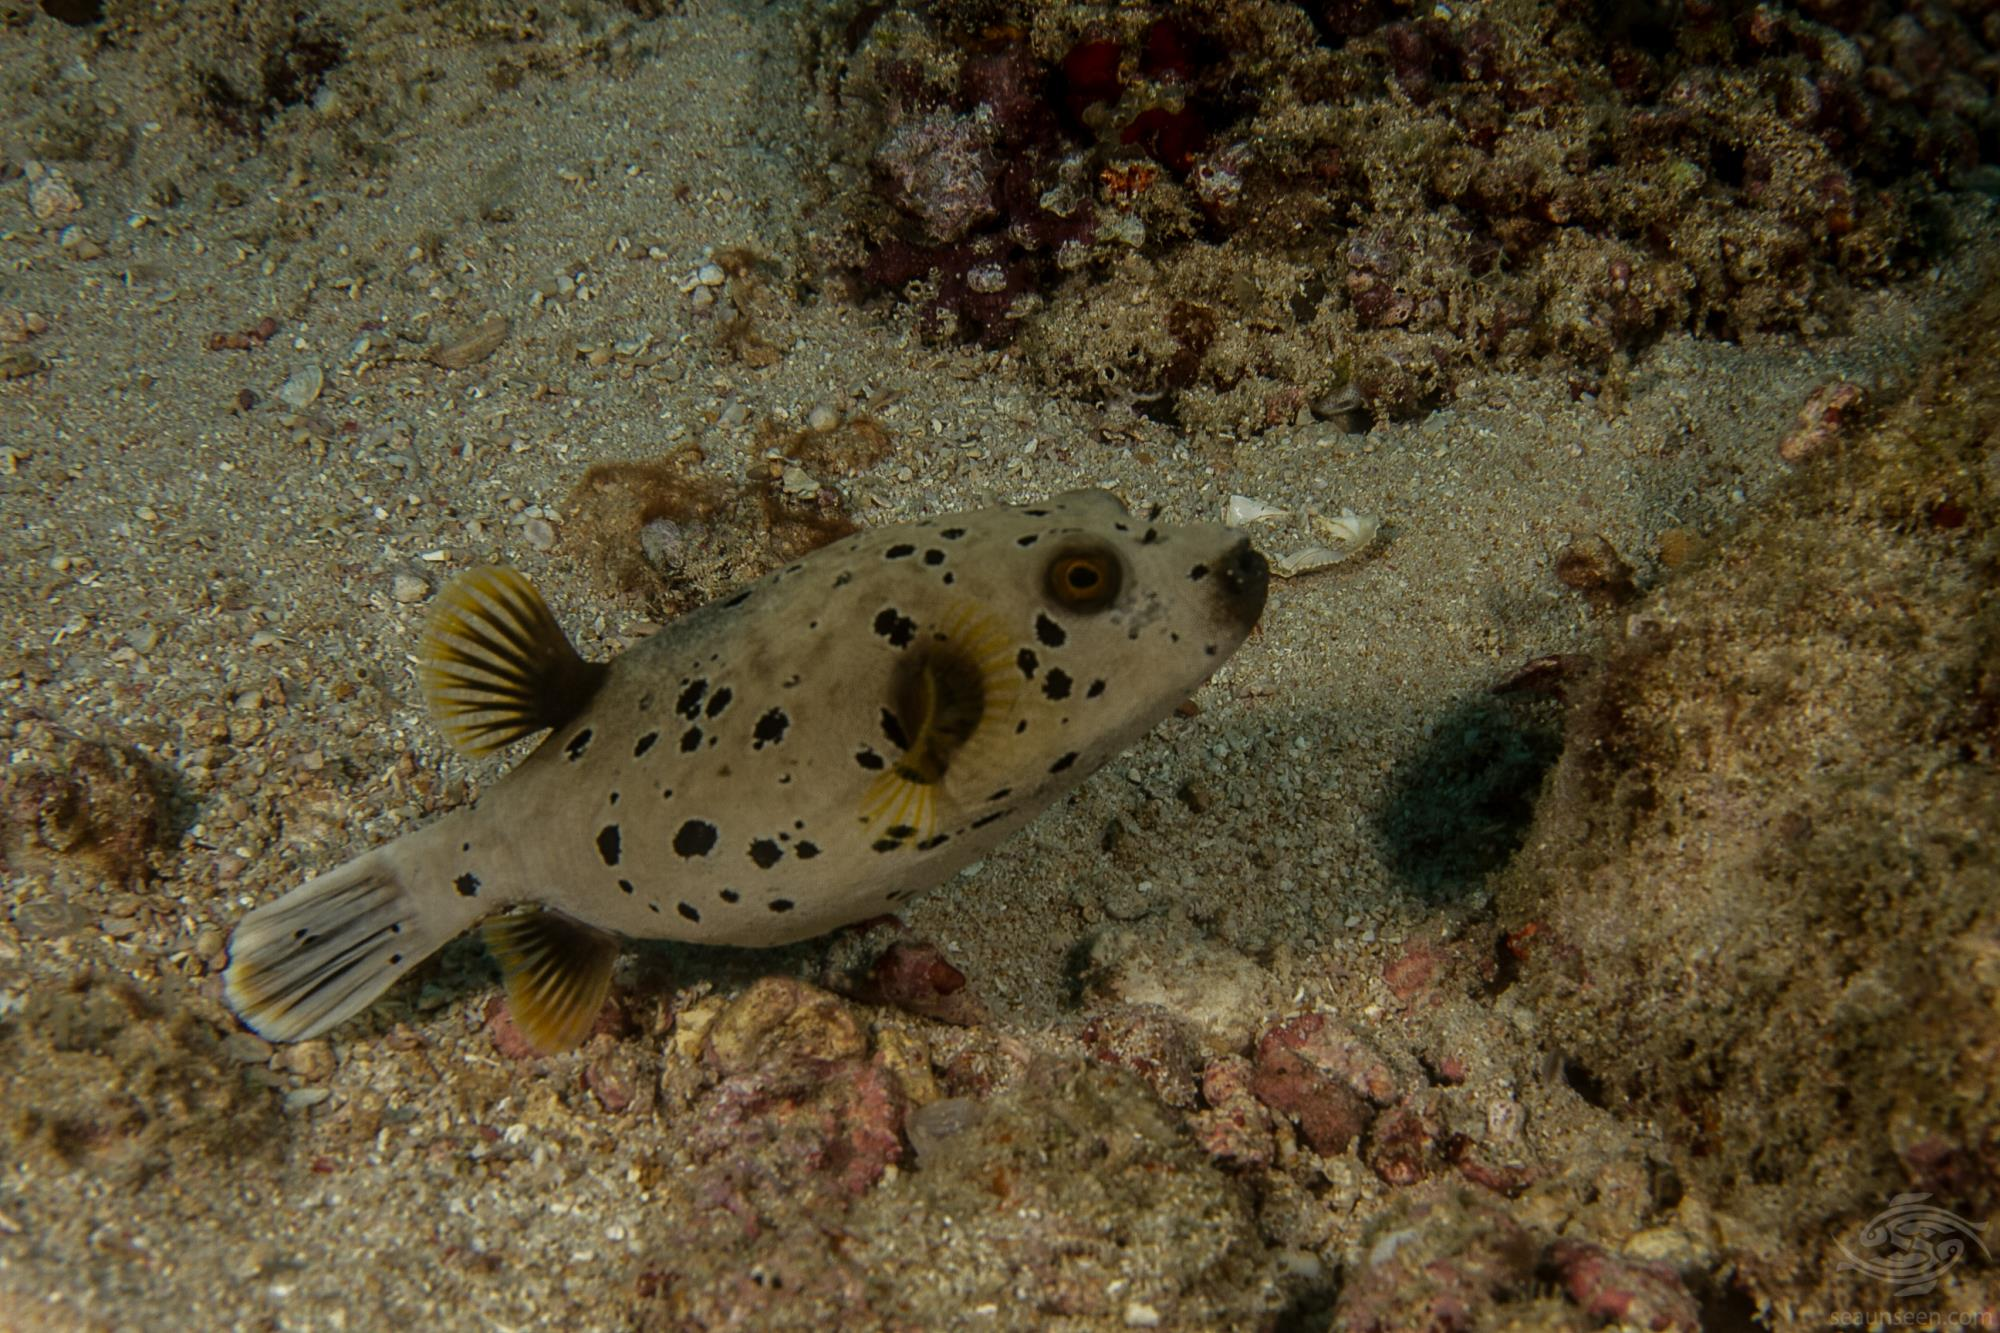 black spotted pufferfish or blowfish, Arothron nigropunctatus